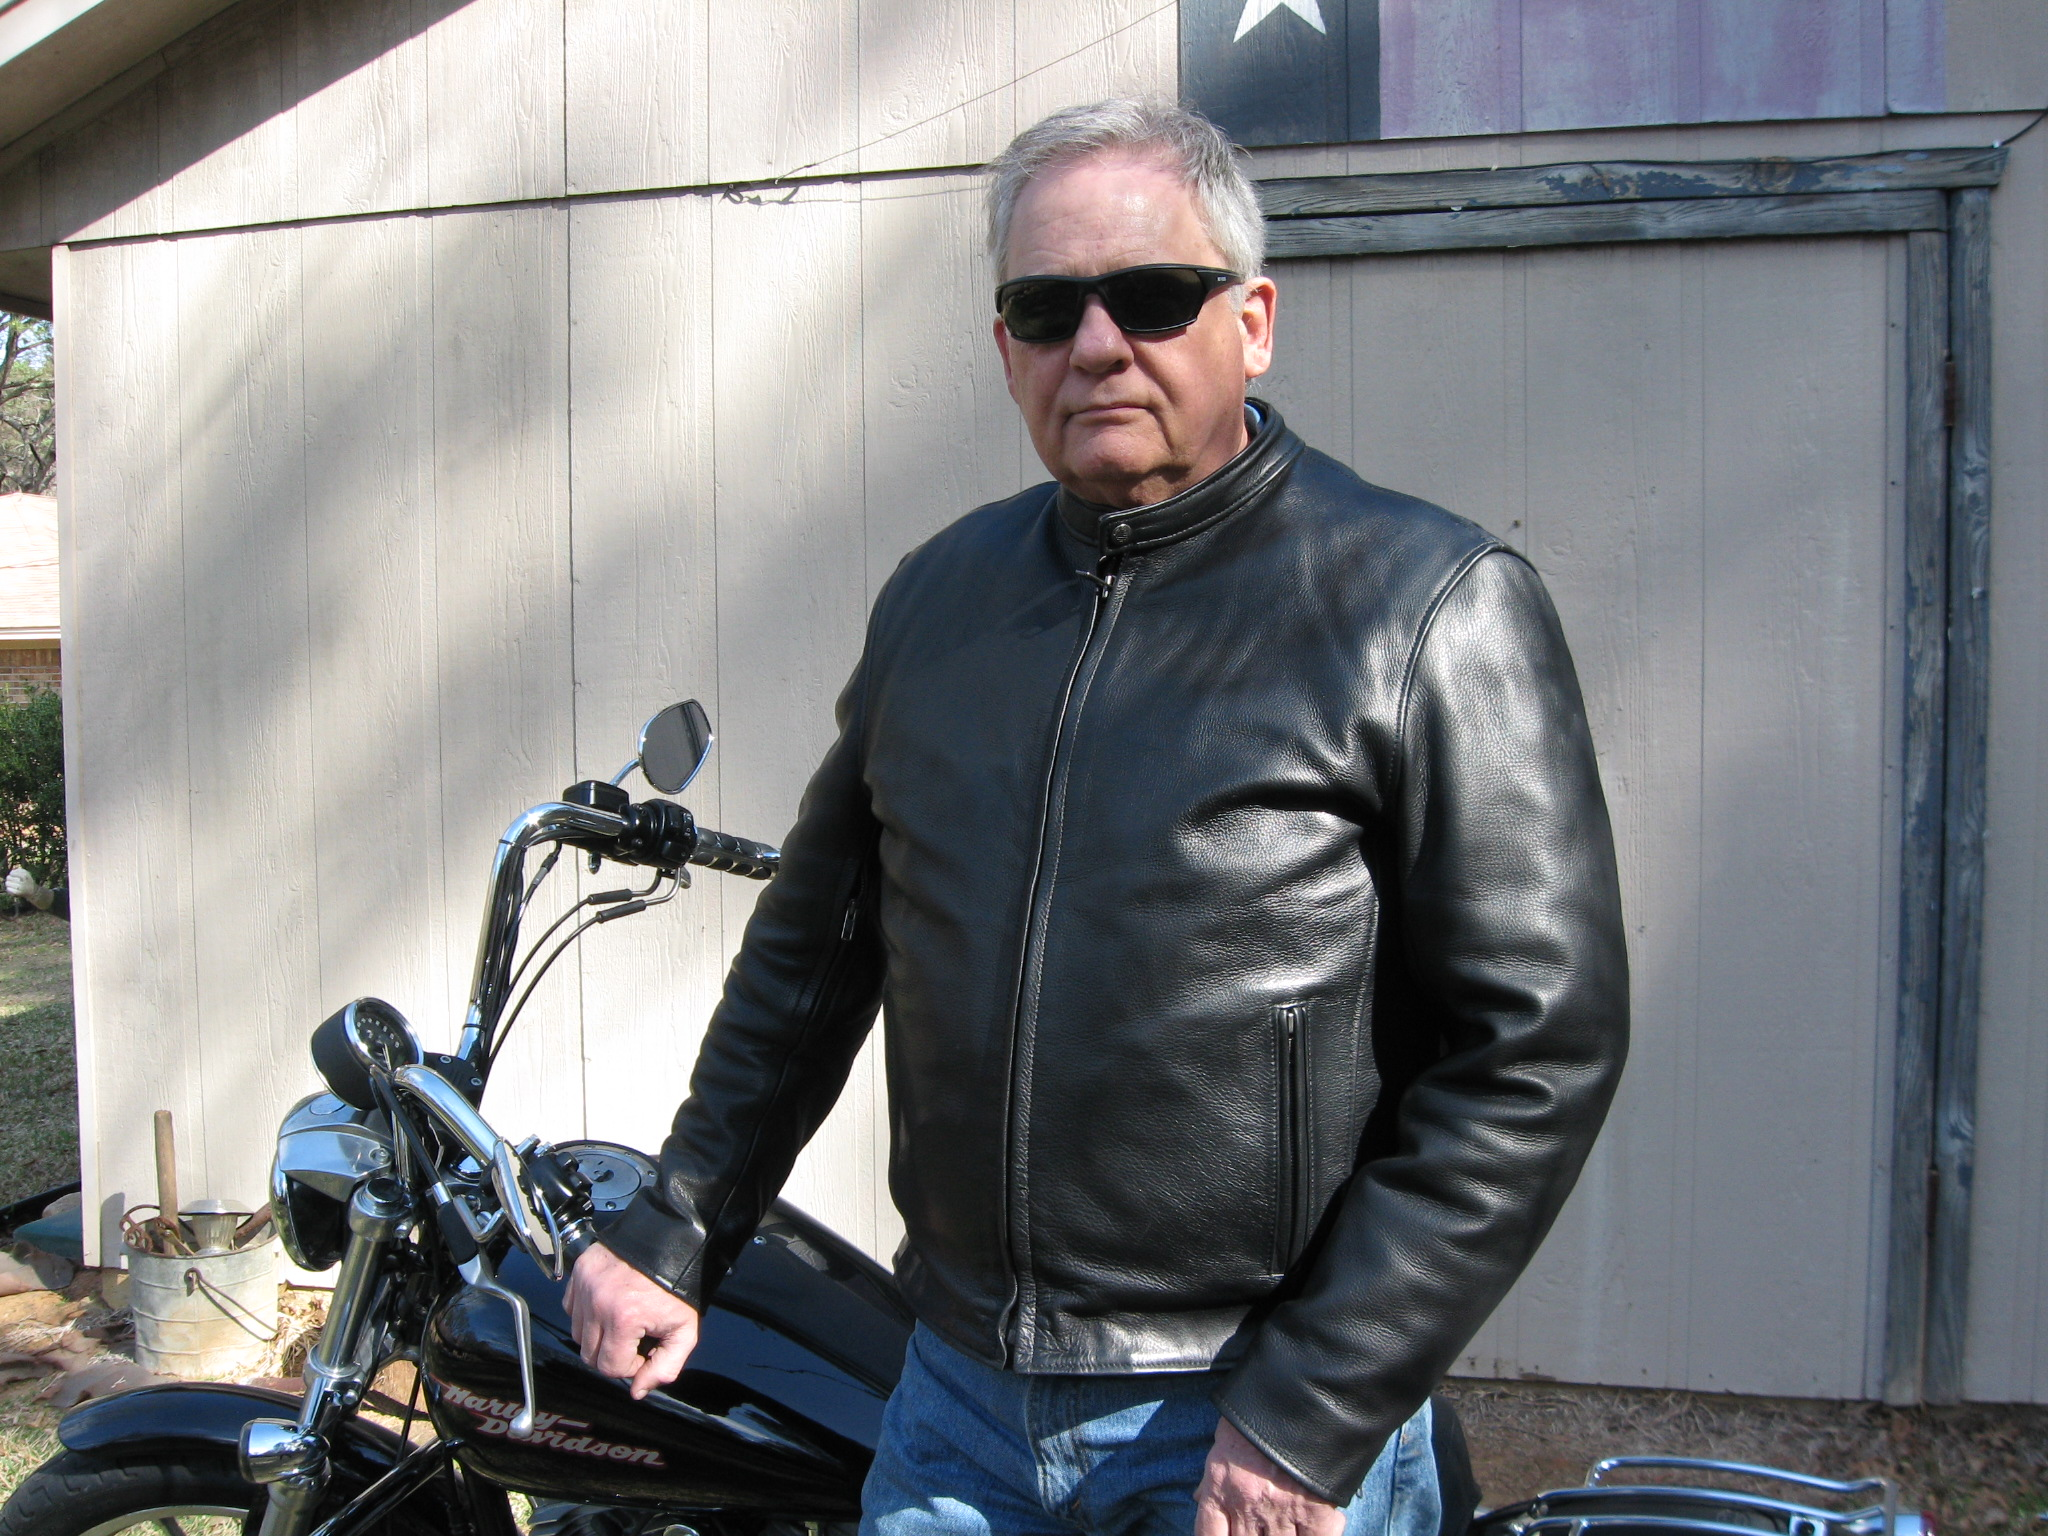 Men's Motorcycle Jacket Review